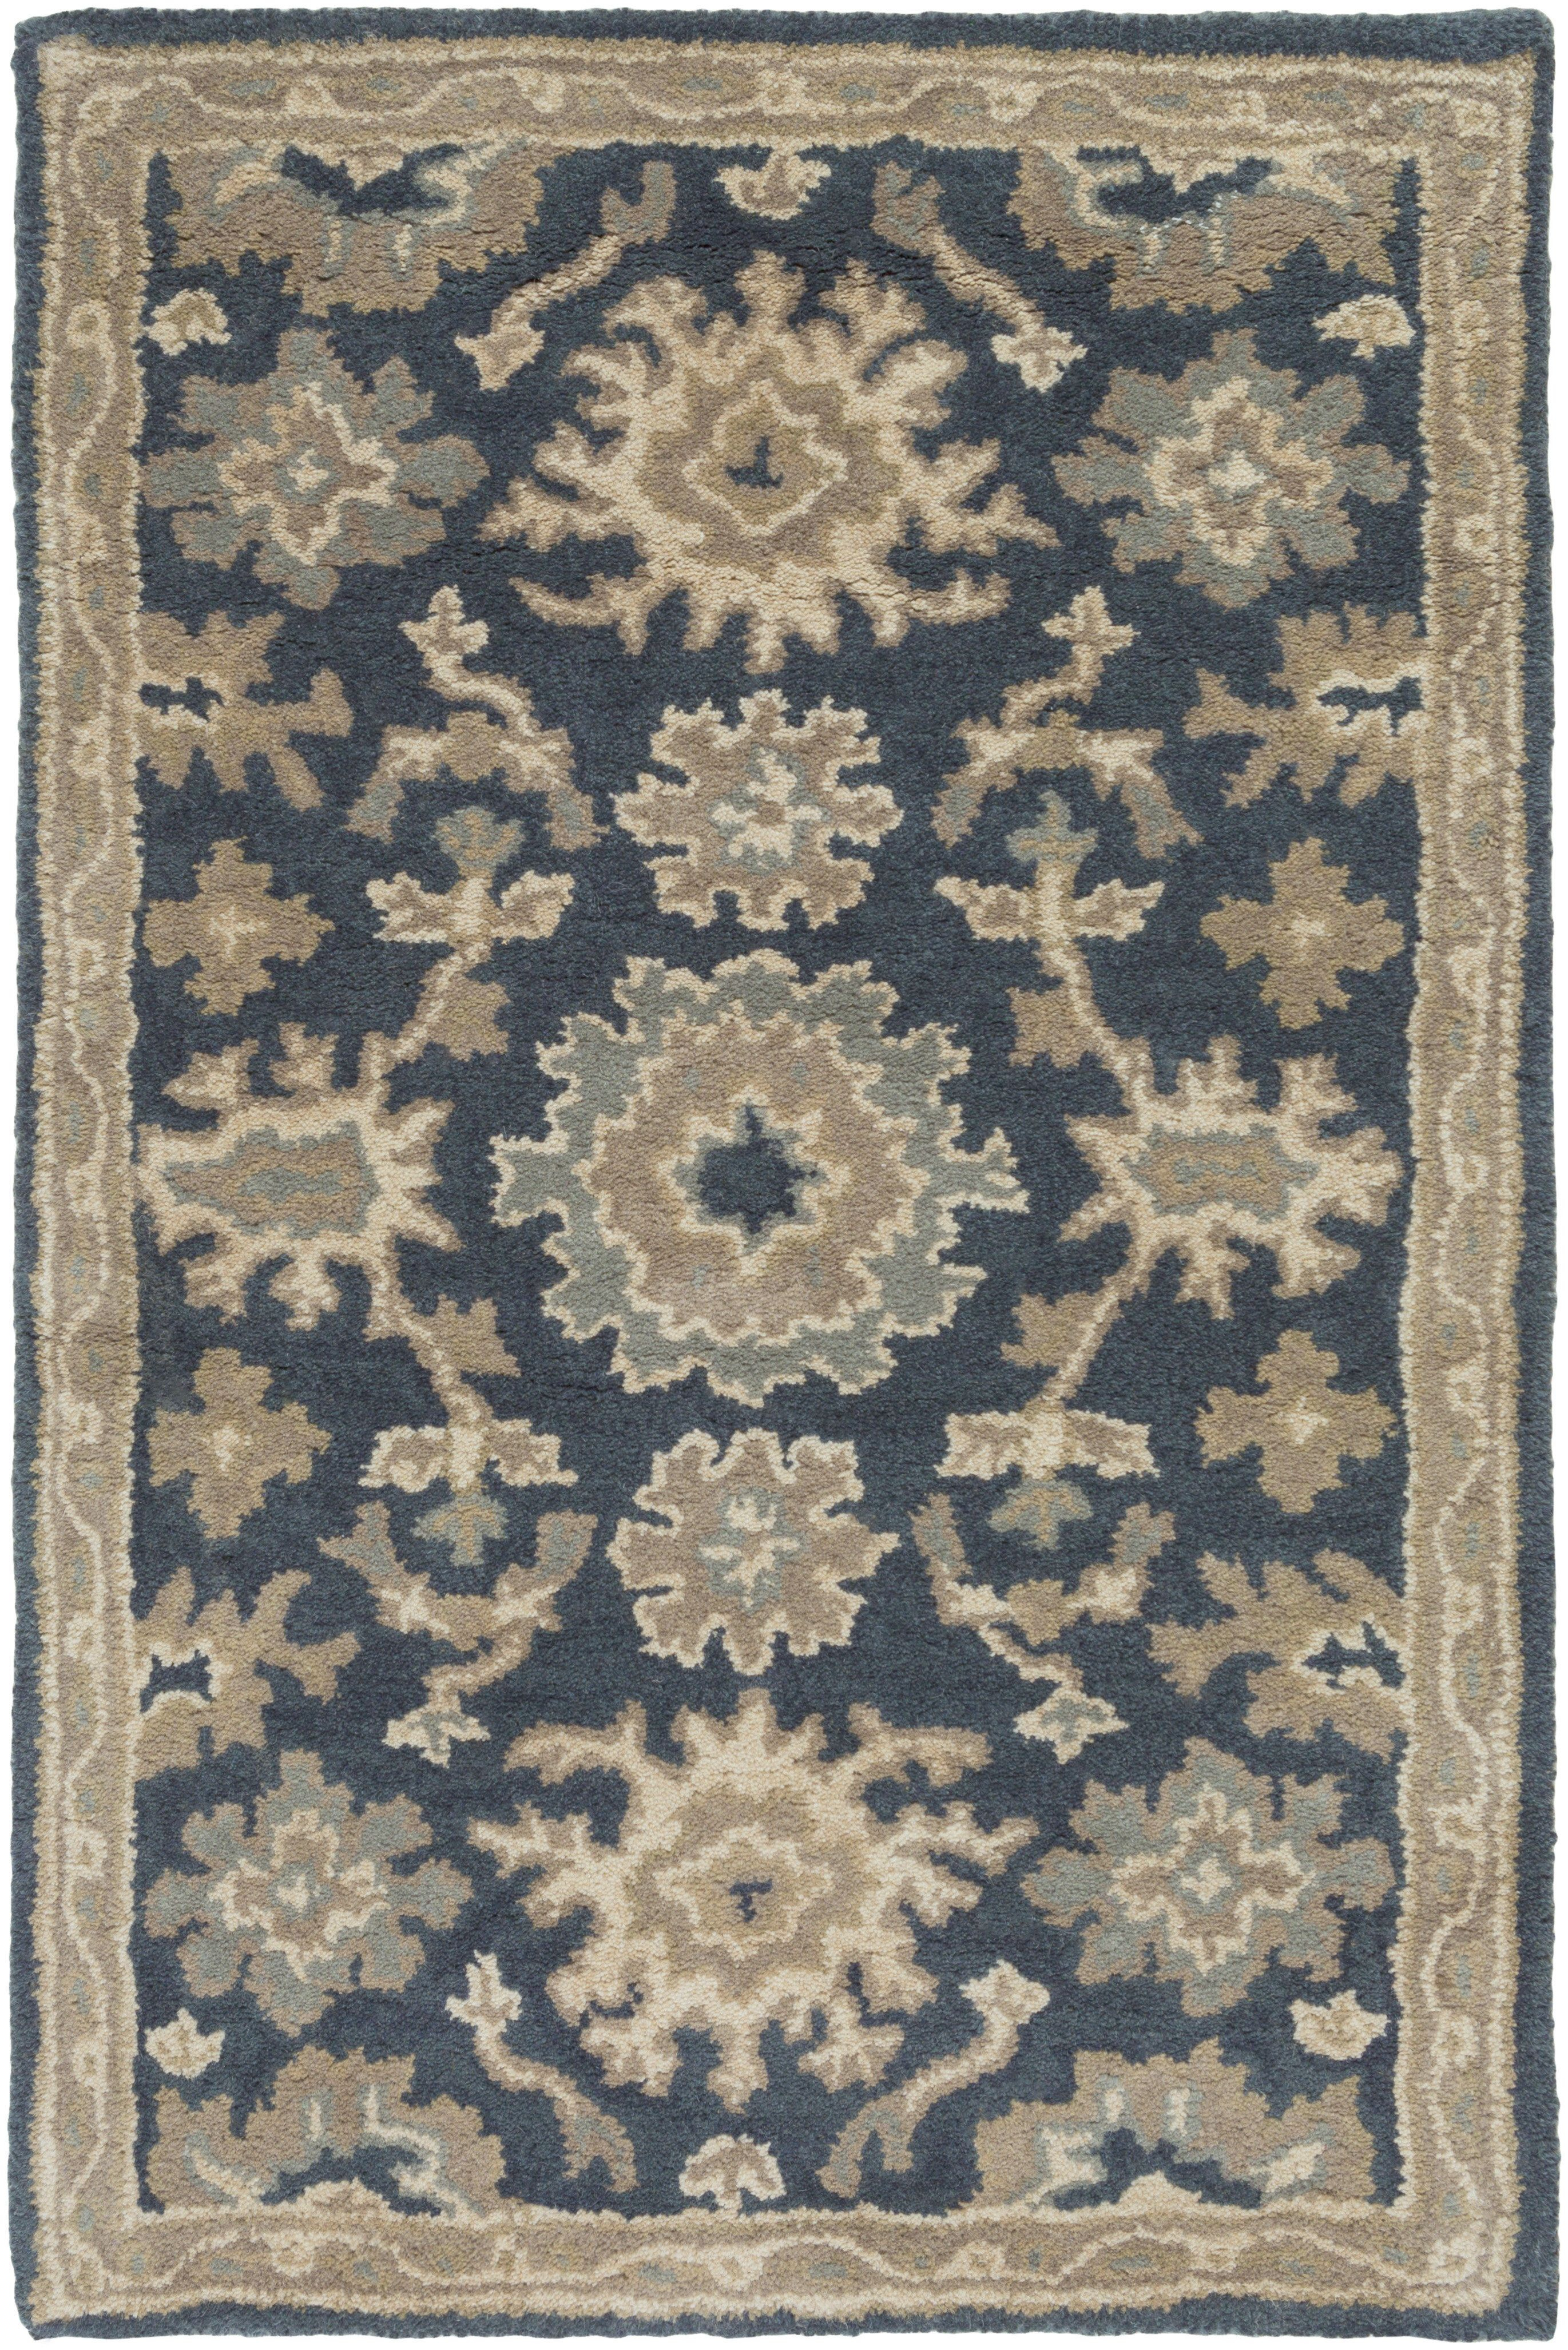 Willard Floral Handmade Tufted Wool Navy Tan Area Rug Wool Area Rugs Traditional Area Rugs Area Rug Collections